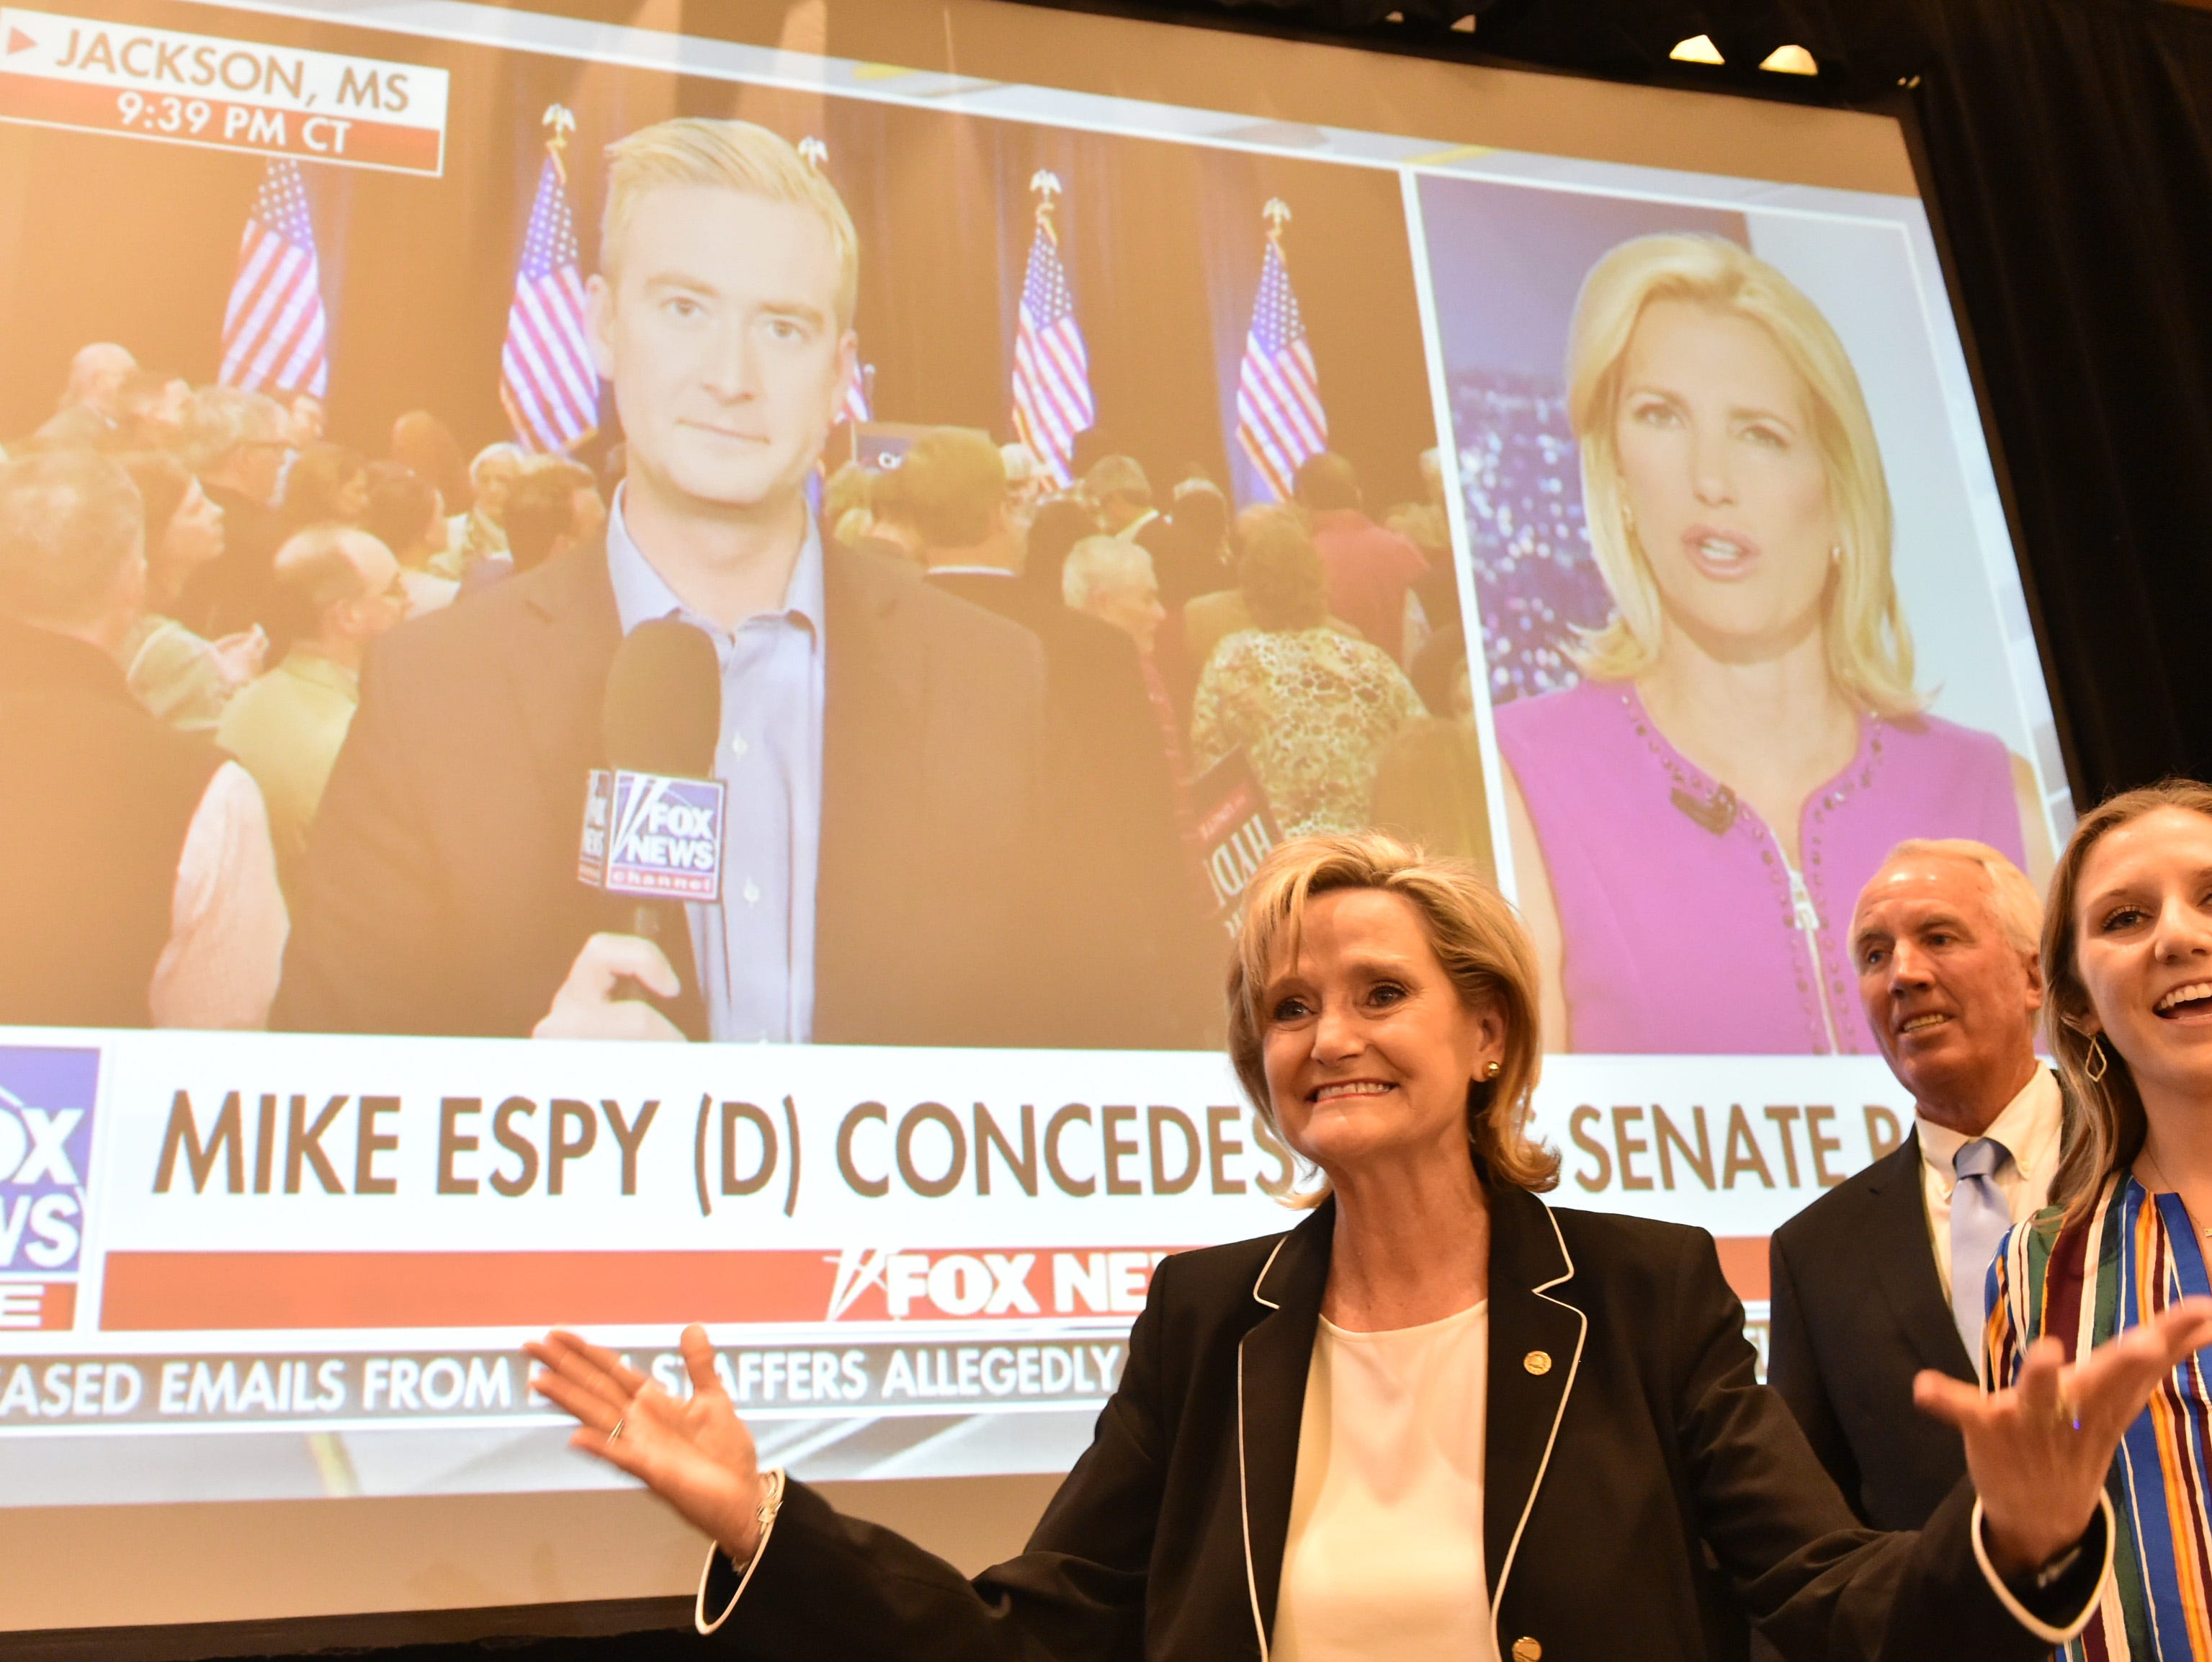 U.S. Sen Cindy Hyde-Smith enters the room of her election watch party at the Westin Hotel in Jackson following the announcement of her win against democratic candidate Mike Espy in the runoff for U.S. senate. Jackson, Miss. Tuesday, Nov. 27, 2018.